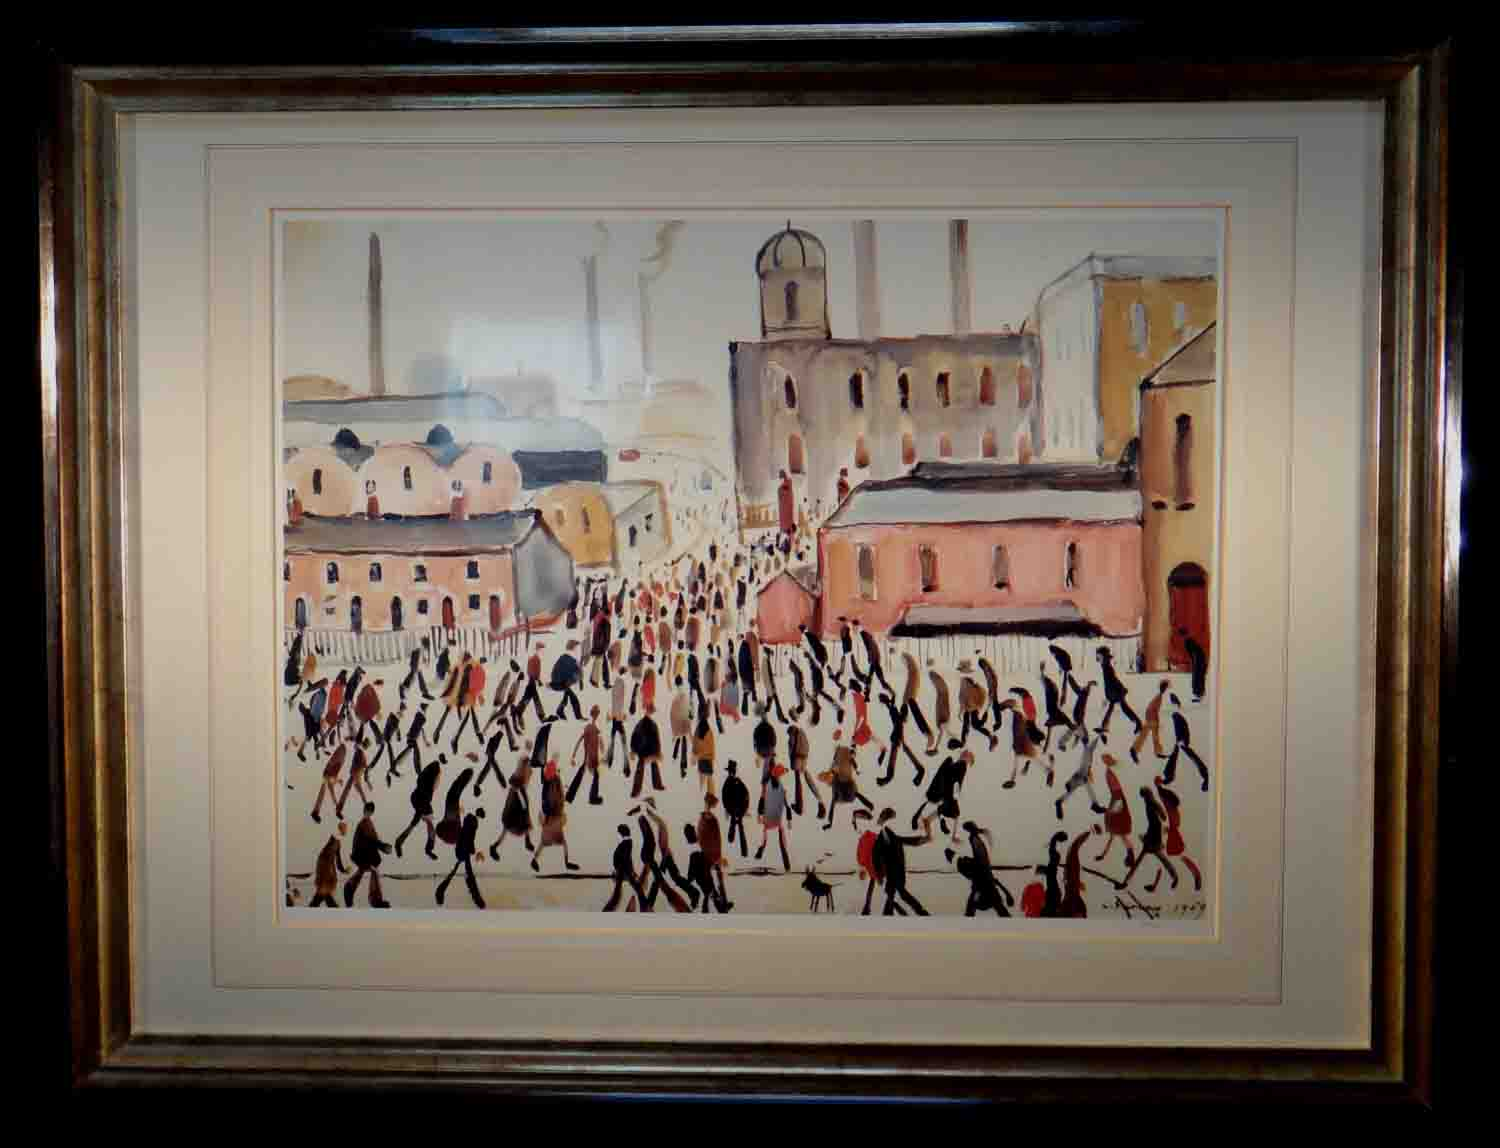 lowry, going to work, limited edition print